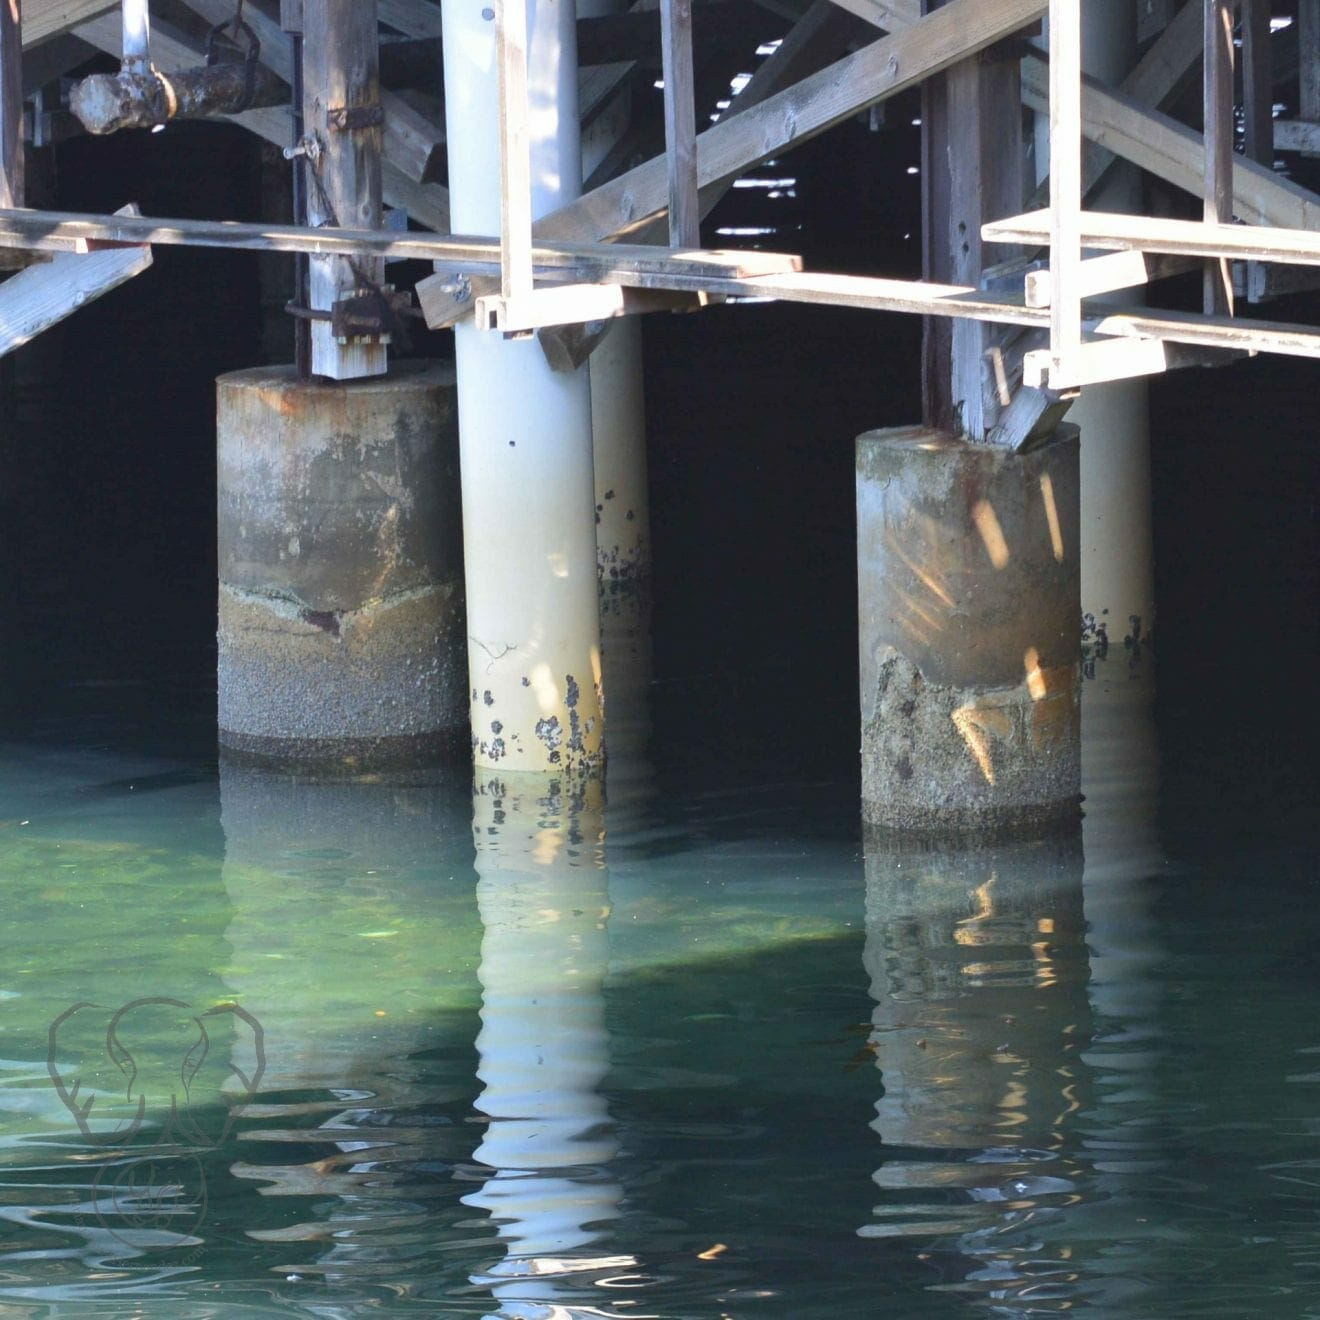 Pylons under a pier in California (Miranda Hernandez)